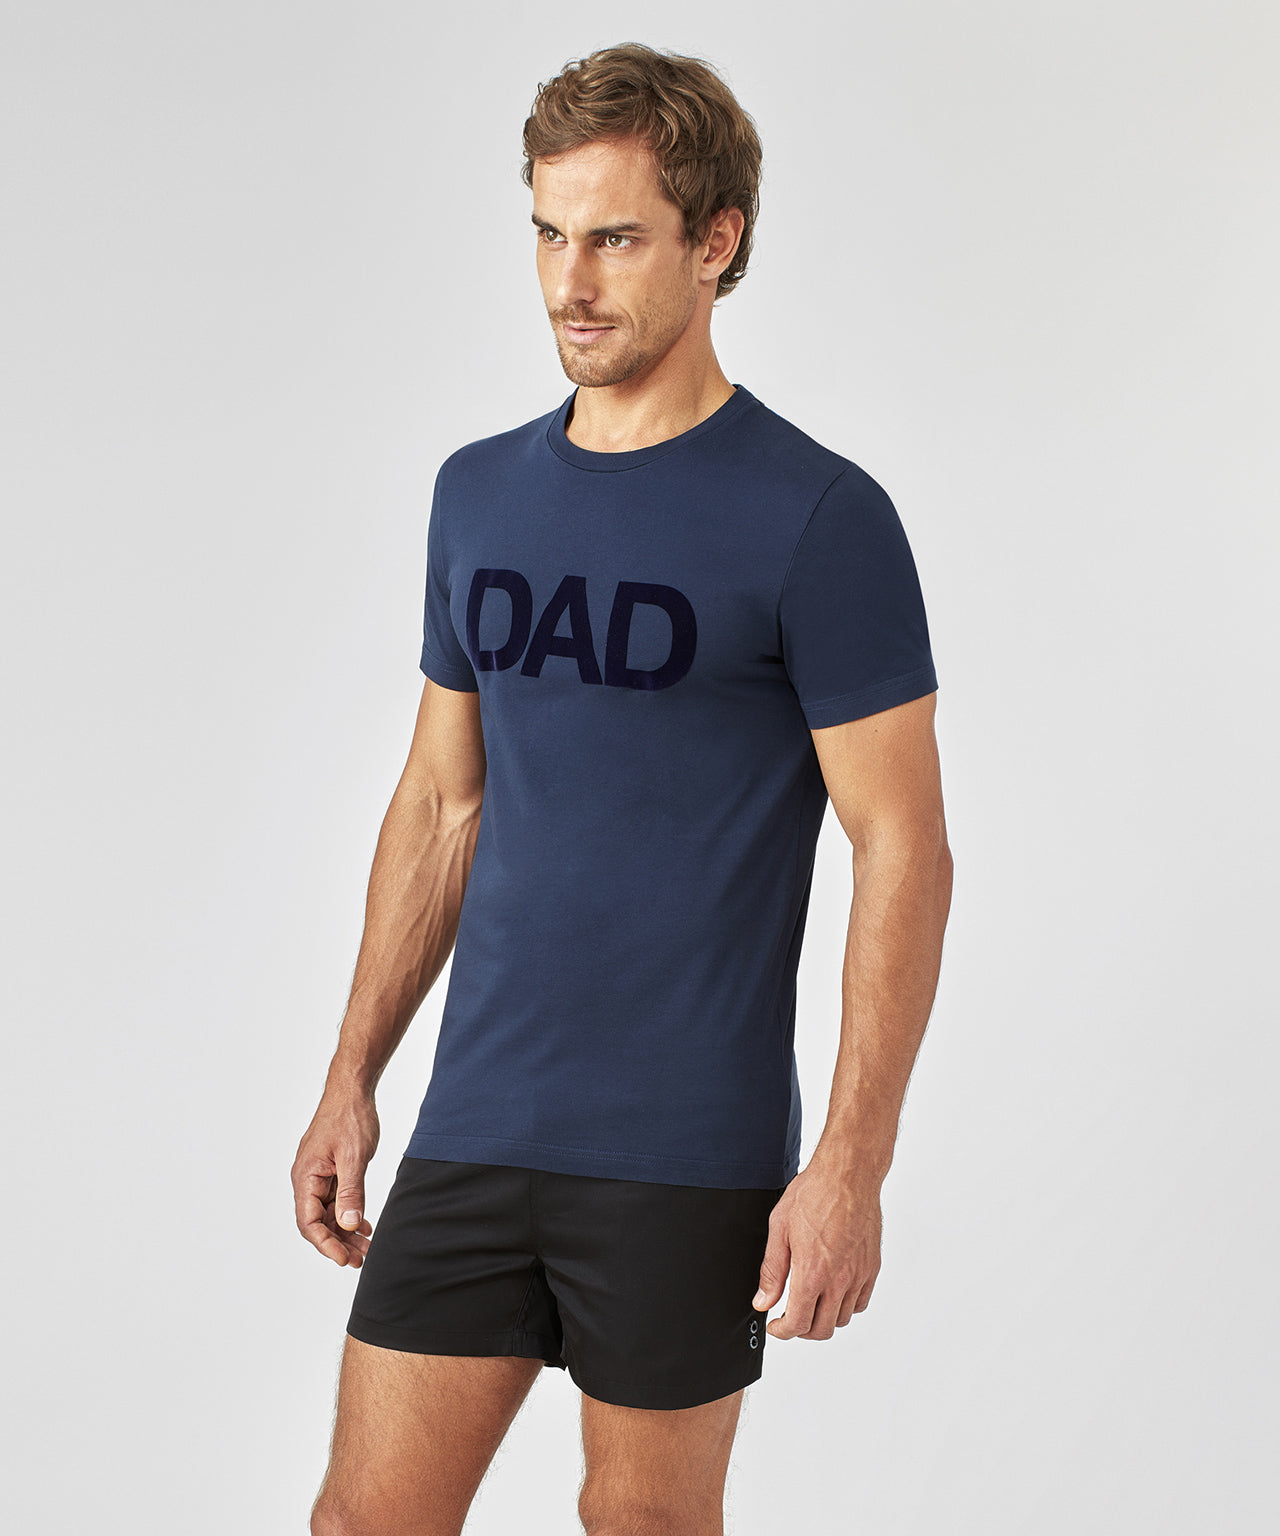 T-Shirt DAD - navy